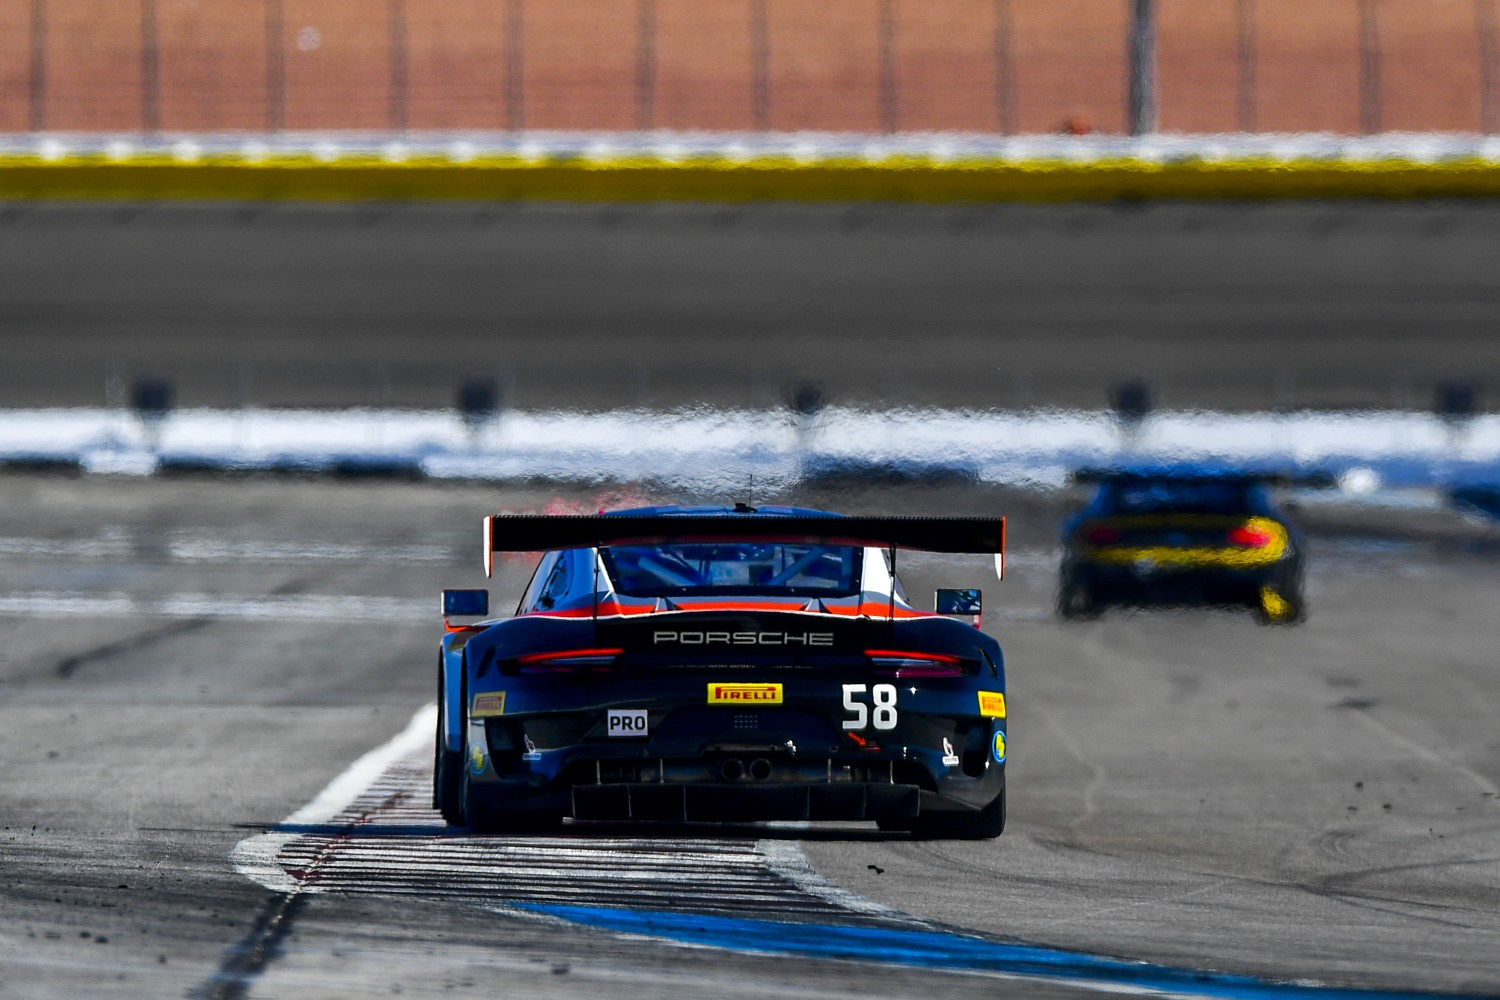 #58 Porsche 911 GT3 R (991) of Patrick Long and Scott Hargrove with Wright Motorsports  2019 Blancpain GT World Challenge America - Las Vegas, Las Vegas NV | Gavin Baker/SRO